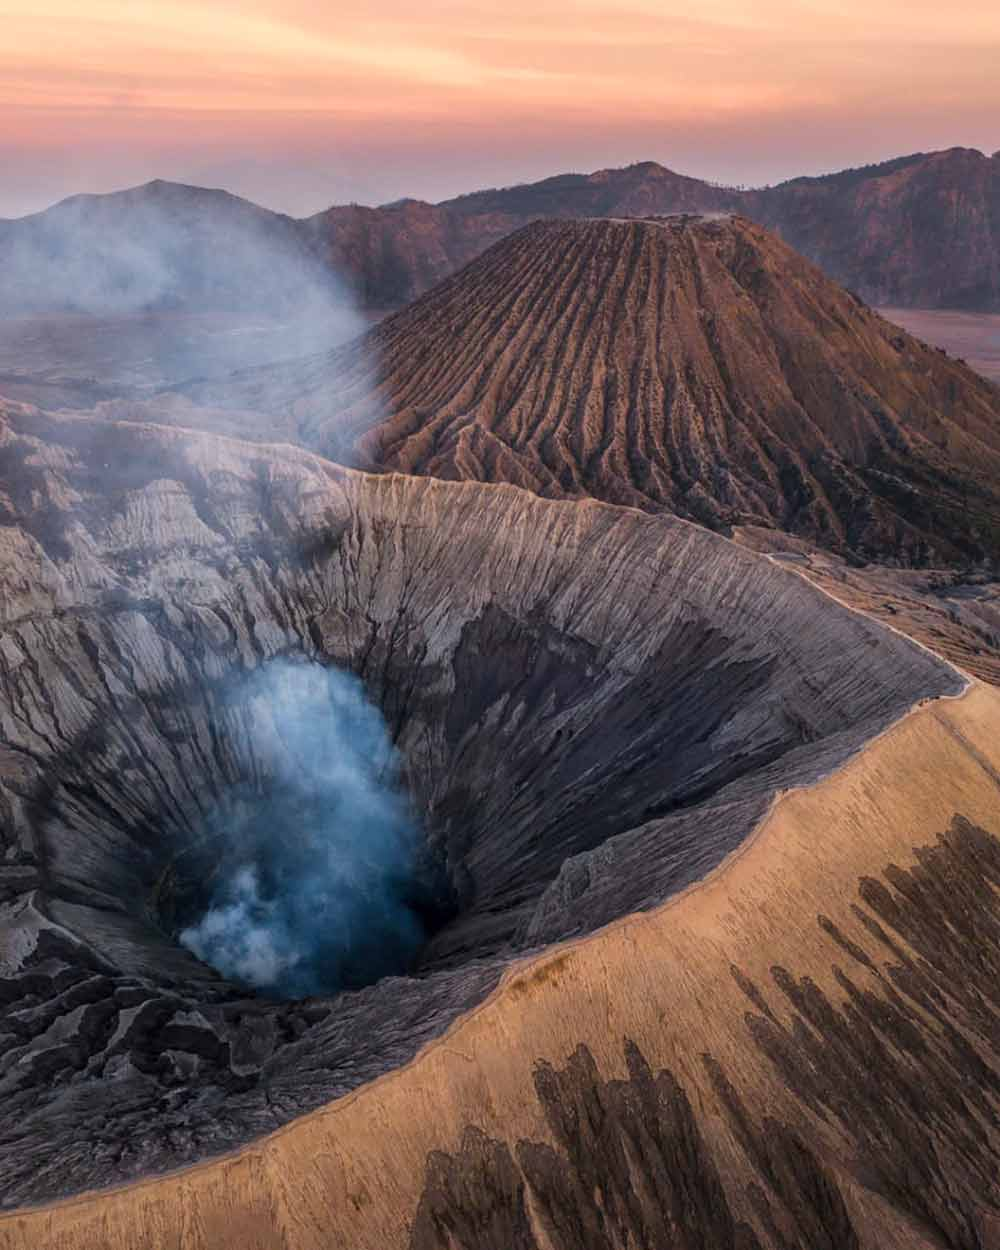 A father-daughter outing up Mount Bromo